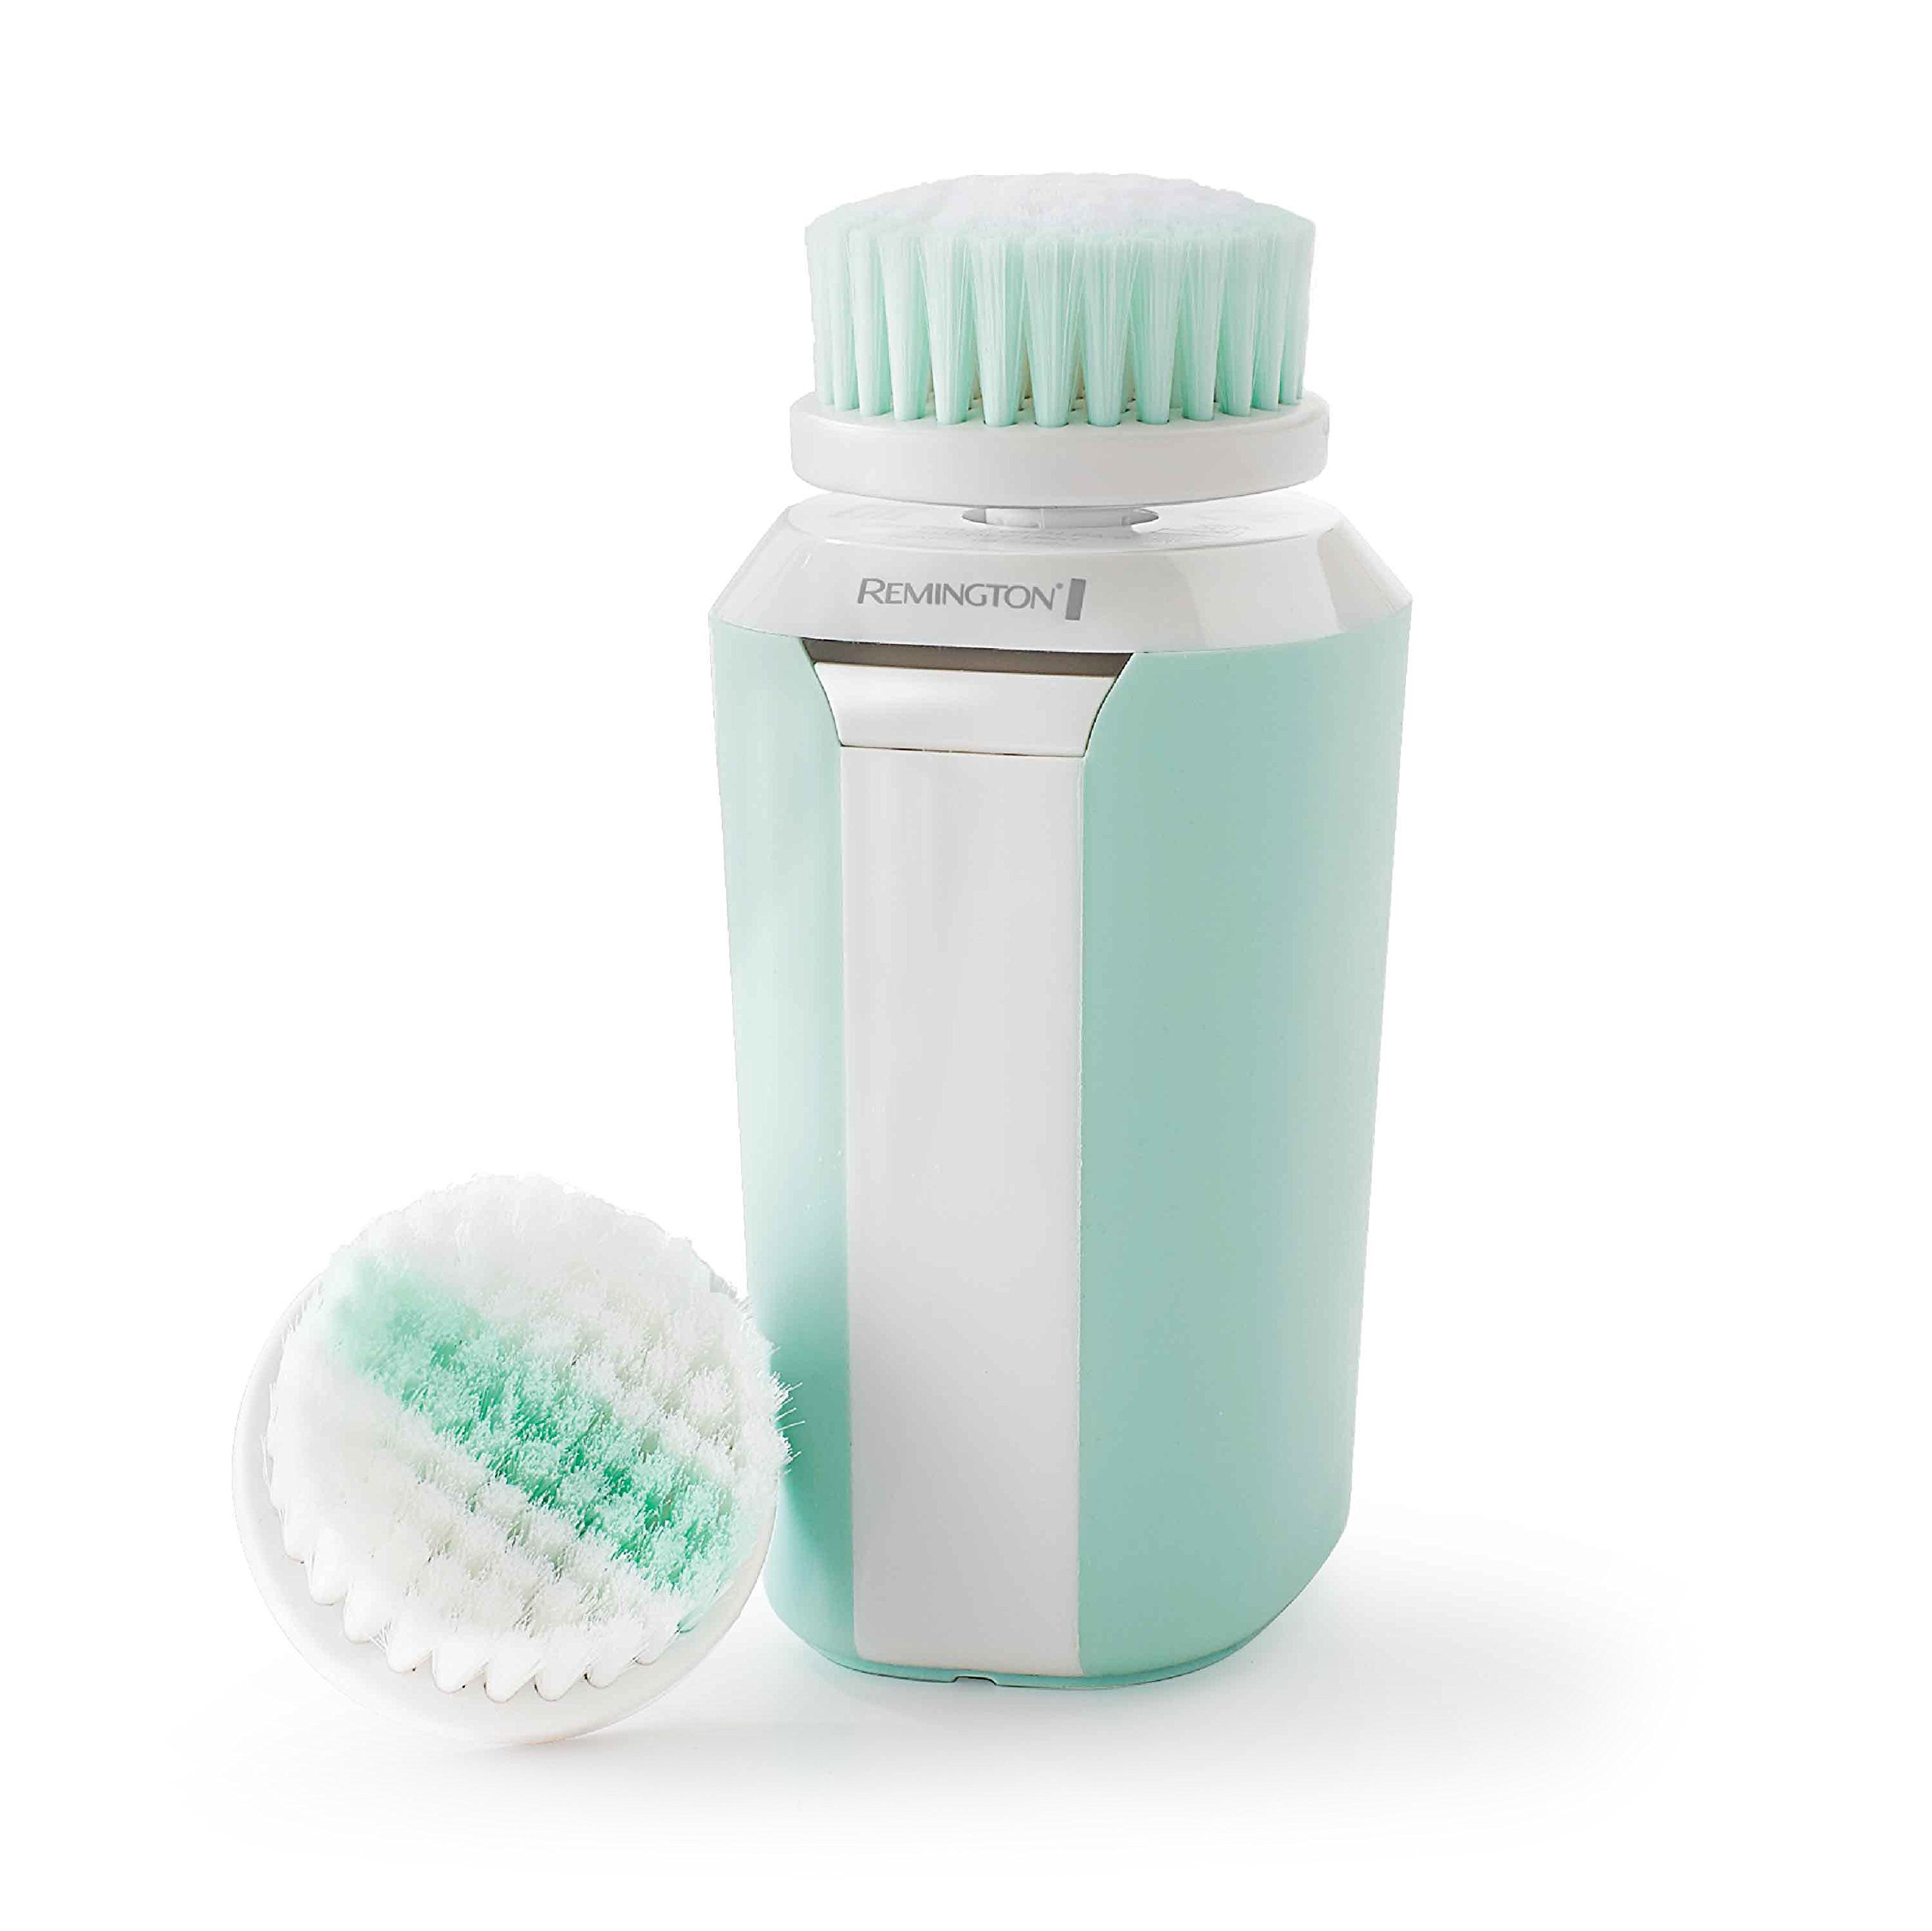 Remington Reveal Compact Facial Cleansing Brush with Dual Power Motion & 2 Anti-Microbial Heads (FC500B)